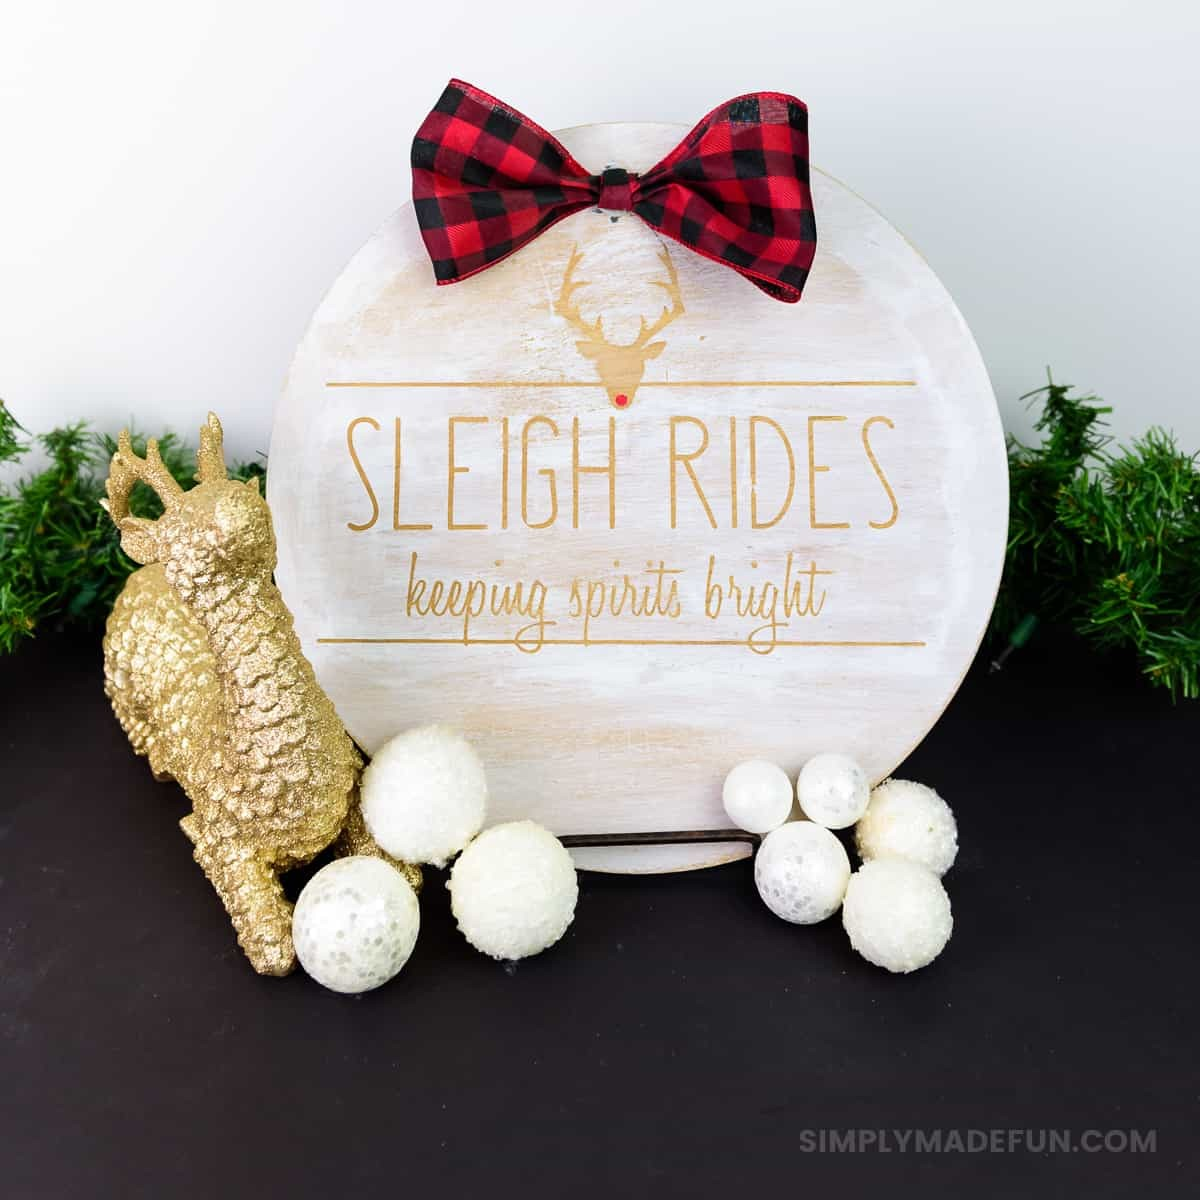 Rae Dunn Inspired Wooden Holiday Sign - After the Christmas decor comes down the whole house feels empty. Make some wall art that'll last all winter long with your Silhouette Machine and some stencil vinyl. This Rae Dunn holiday sign is the perfect rustic DIY for your home!